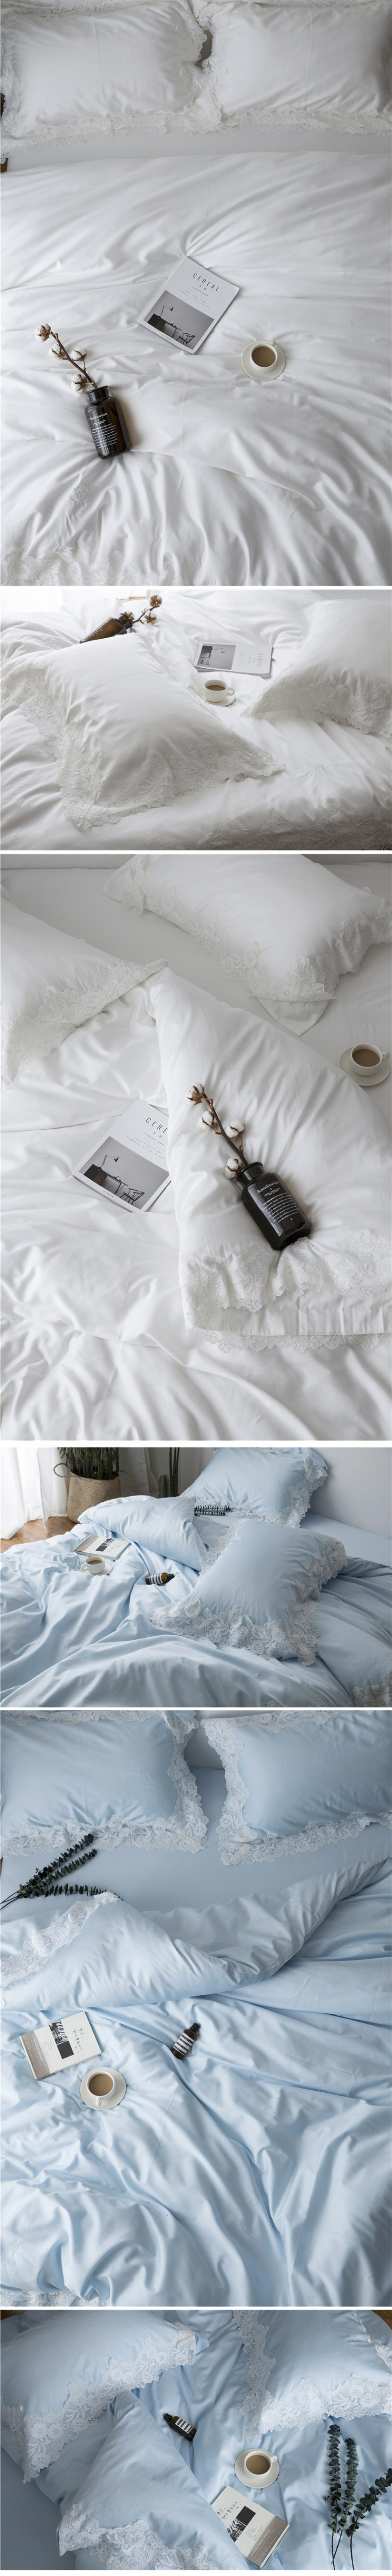 Wedding bedding sets king size 60s satin long staple cotton bed sheets romantic lace embroidery duvet cover bed linen 6